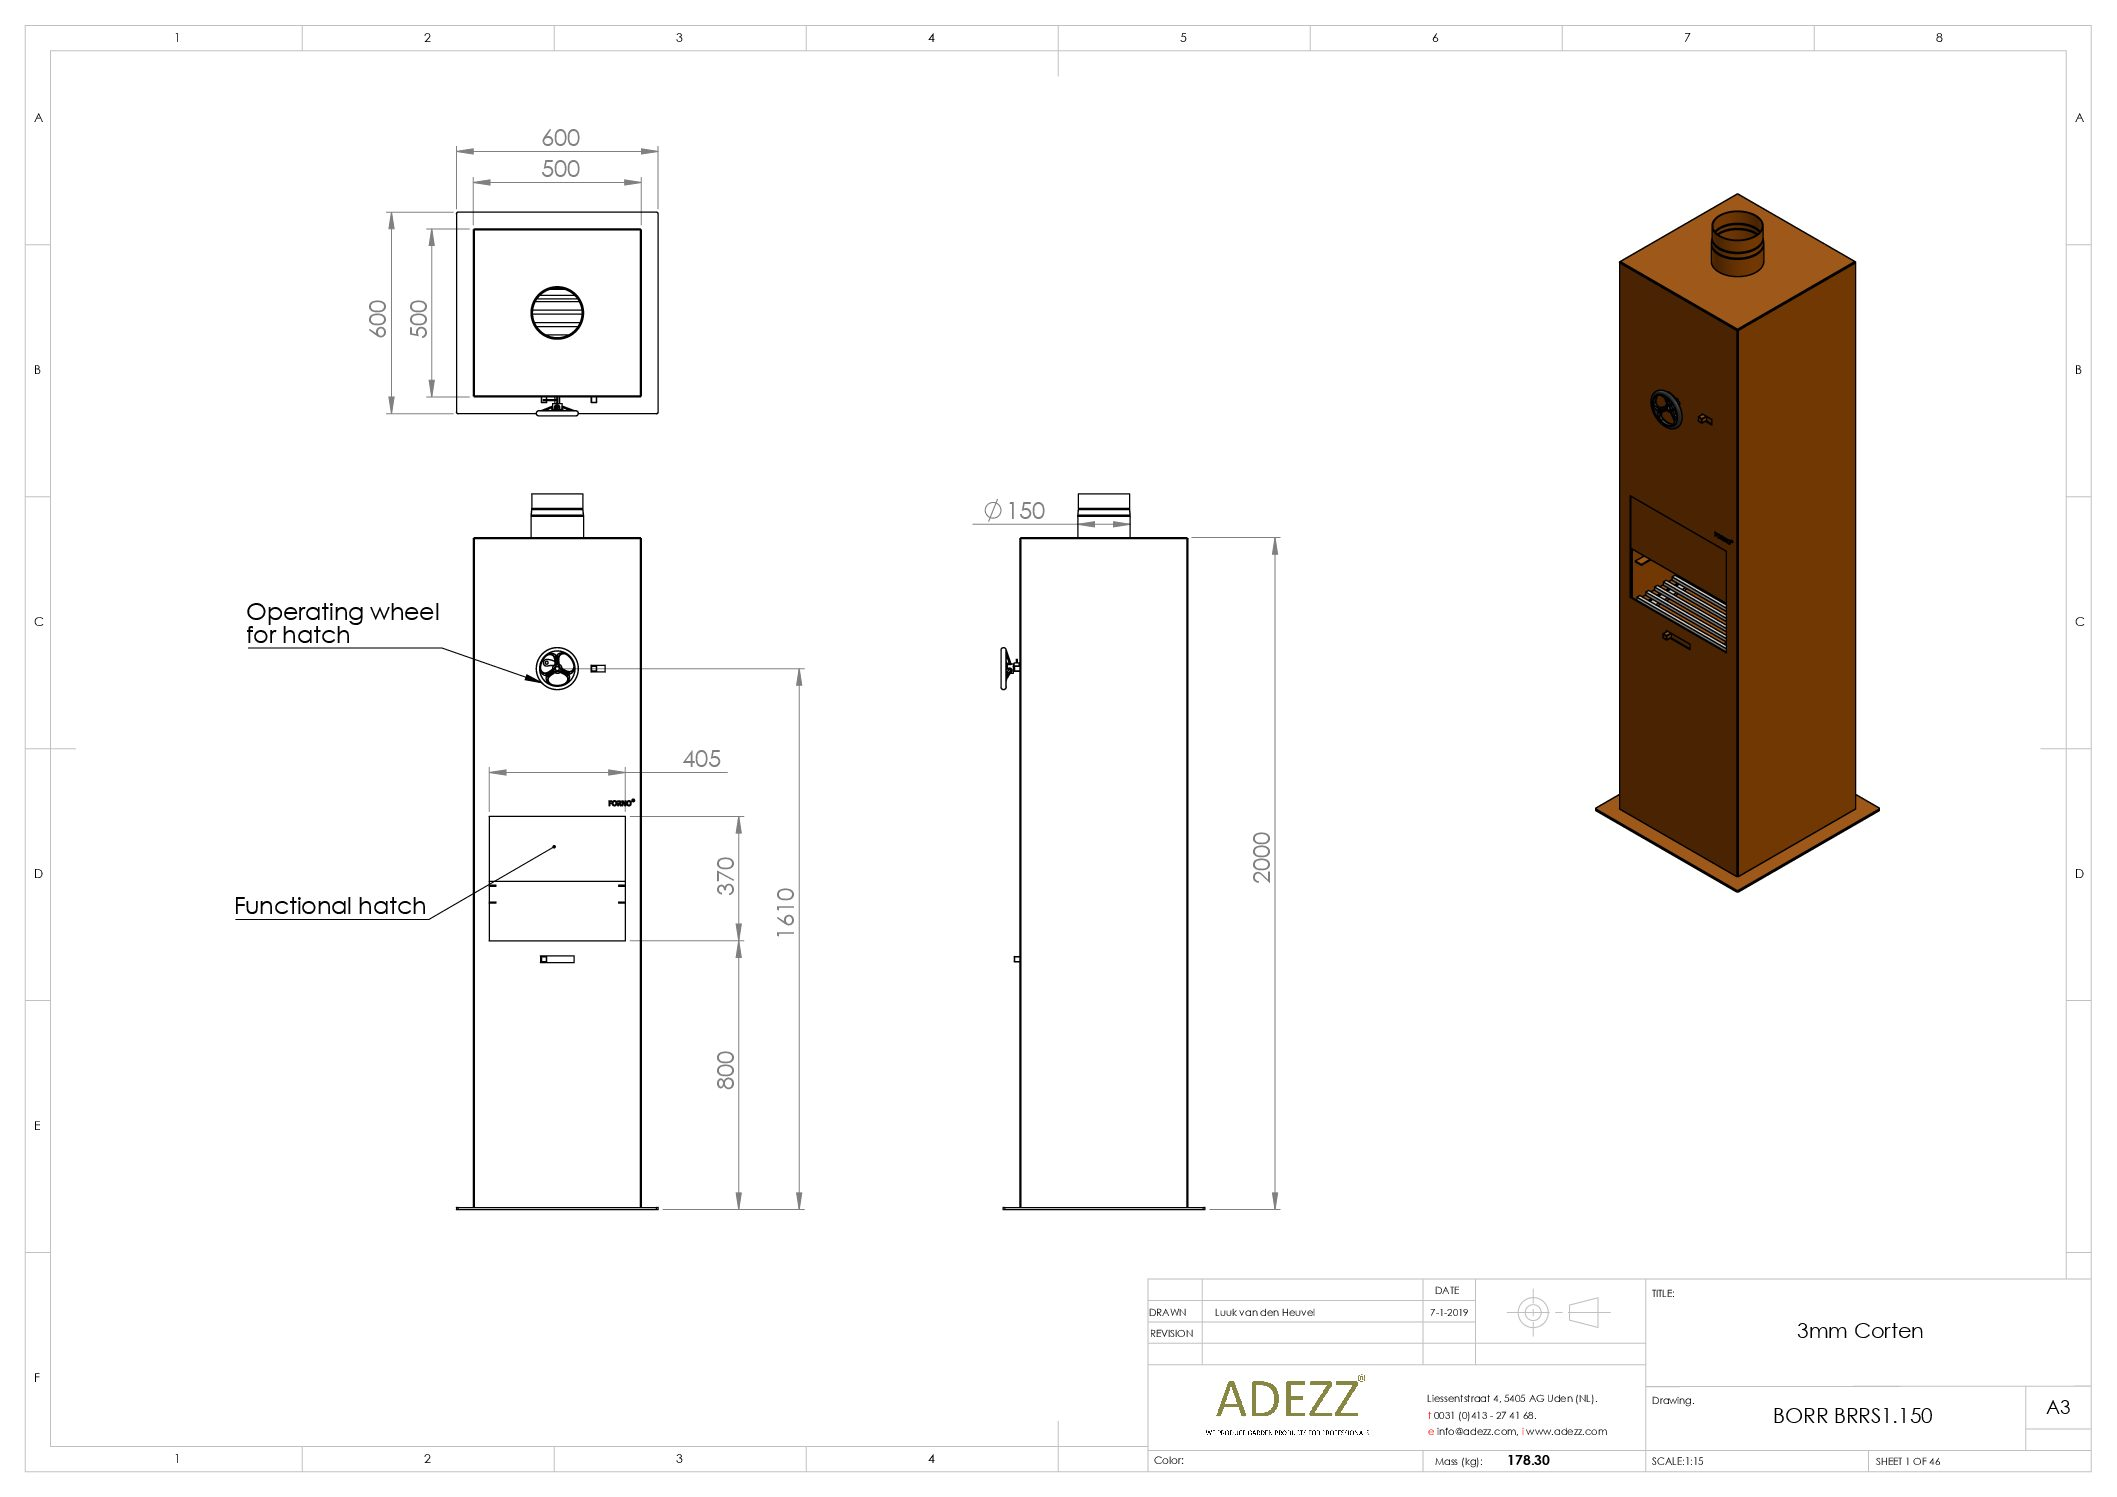 Borr Corten Steel Log Burner by Adezz 50x50x200cm Technical Drawing